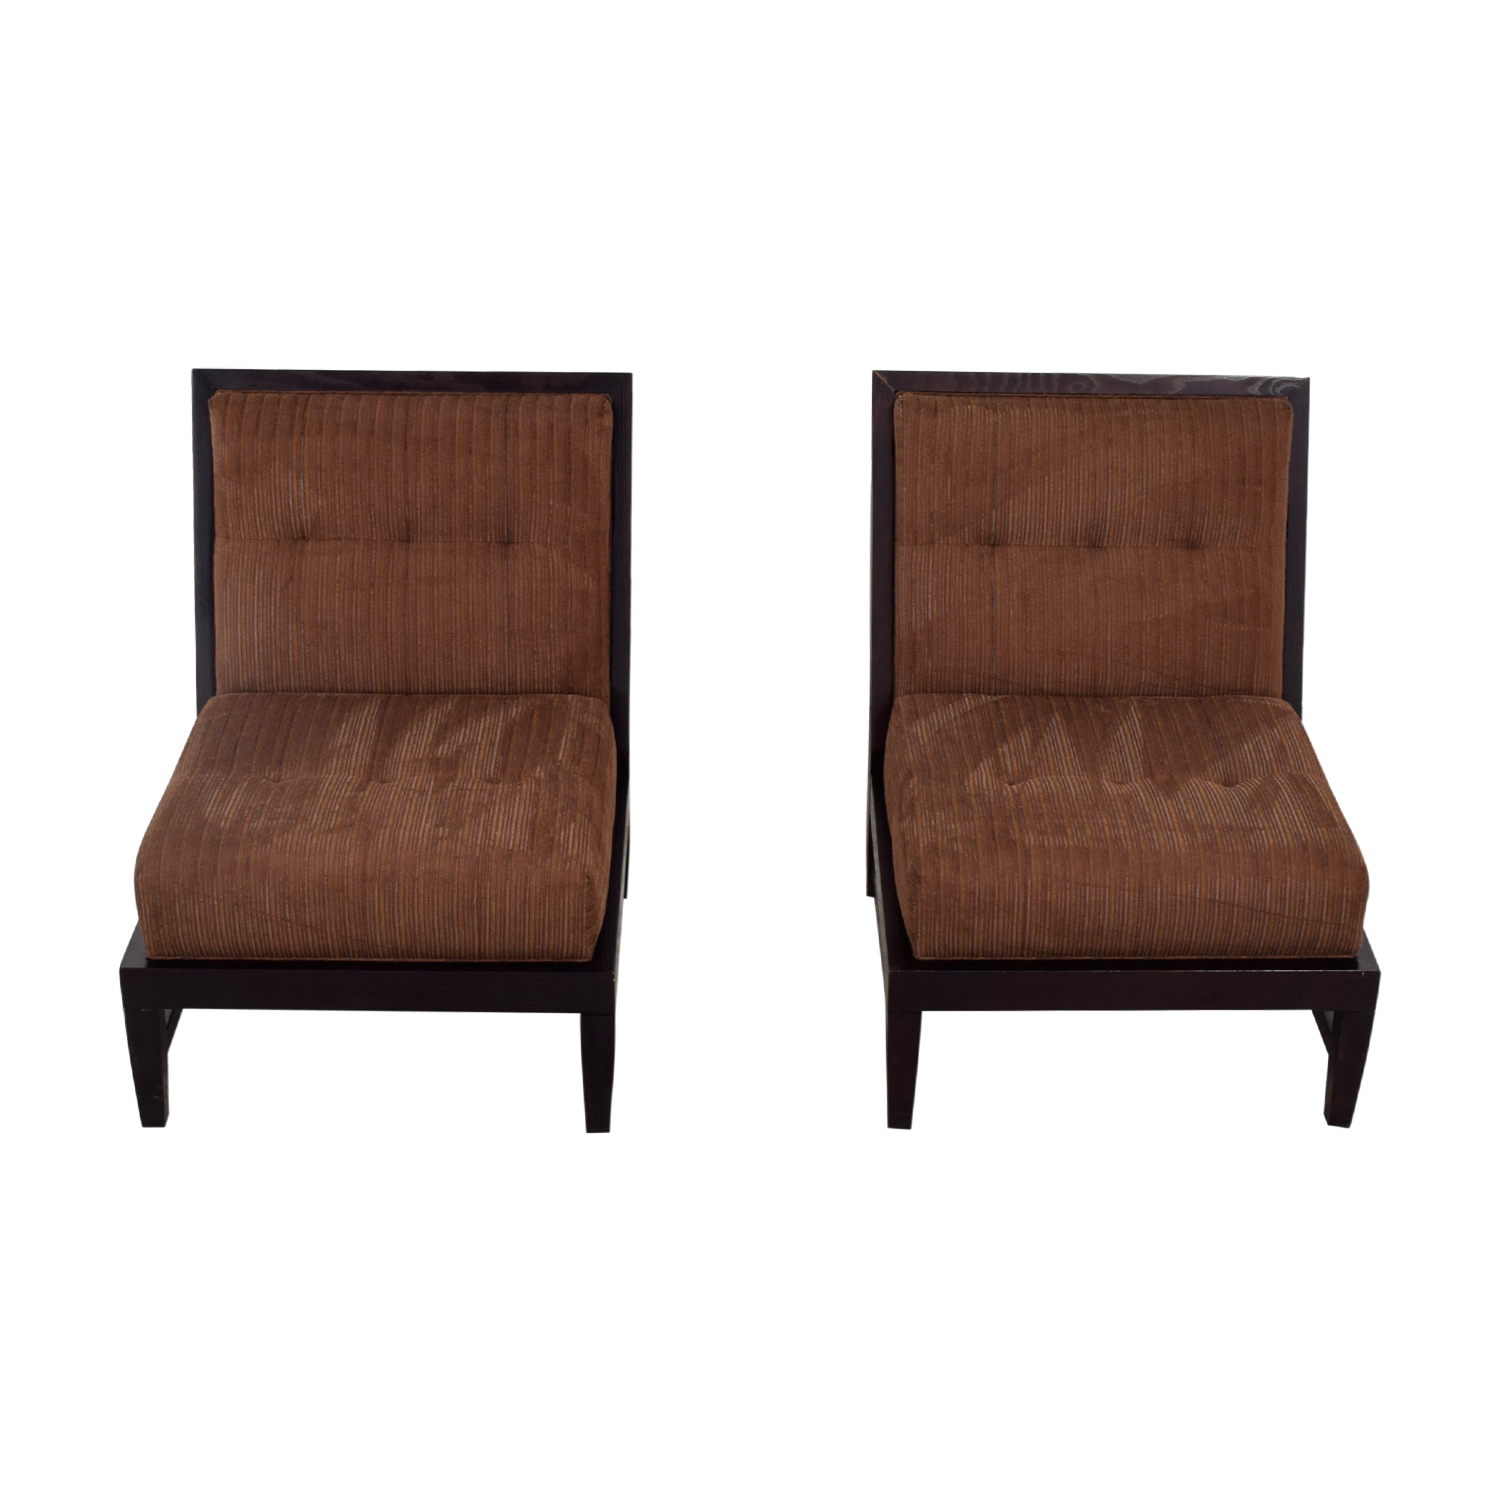 Ordinaire ... Vanguard Furniture Vanguard Furniture Brown Upholstered Side Chairs  Discount ...